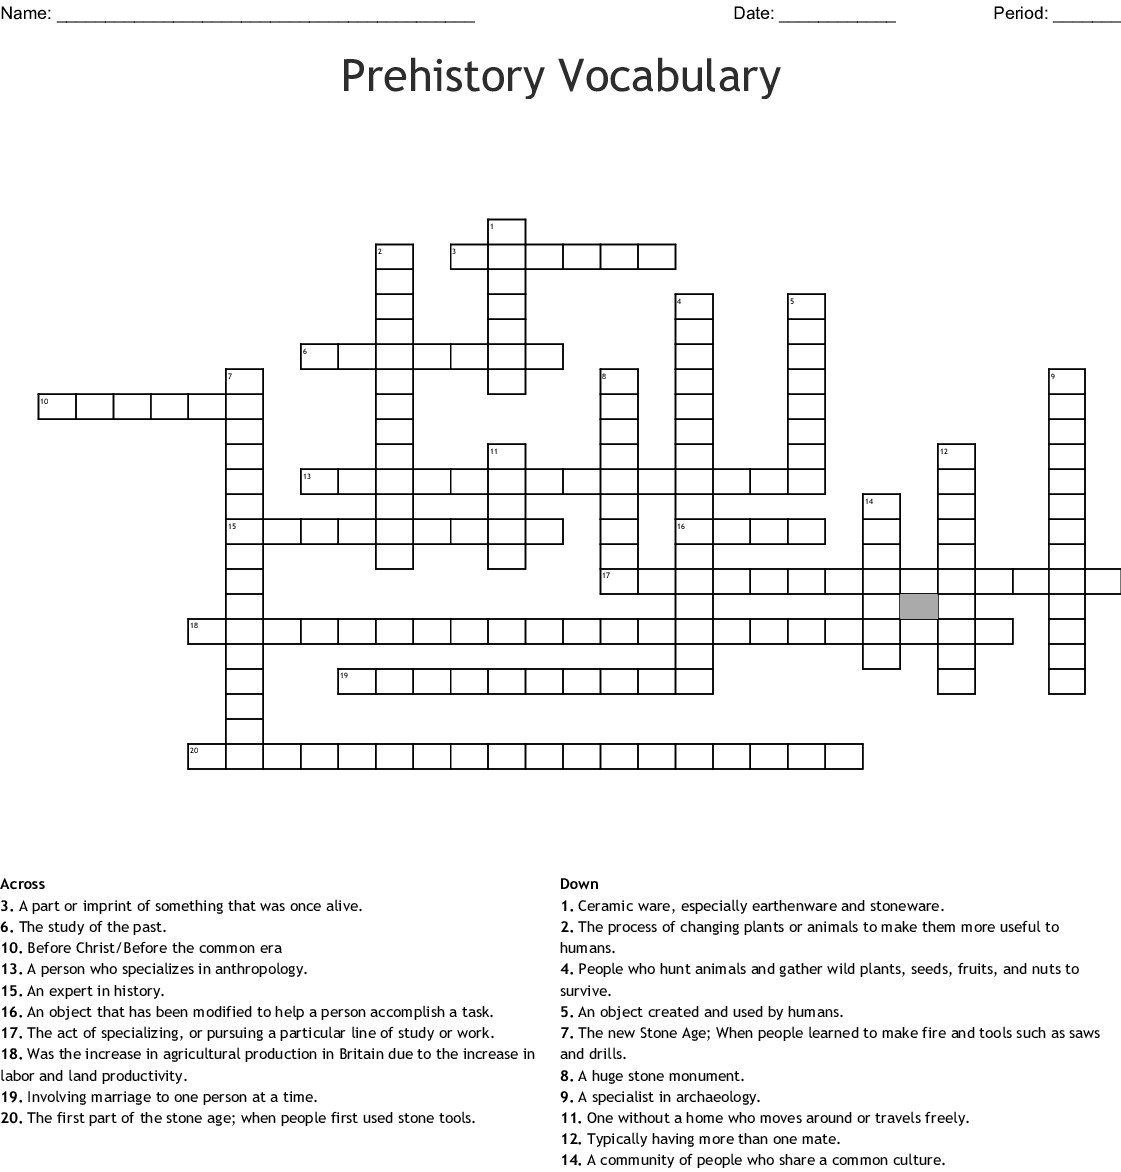 Prehistory Vocabulary Crossword Puzzle